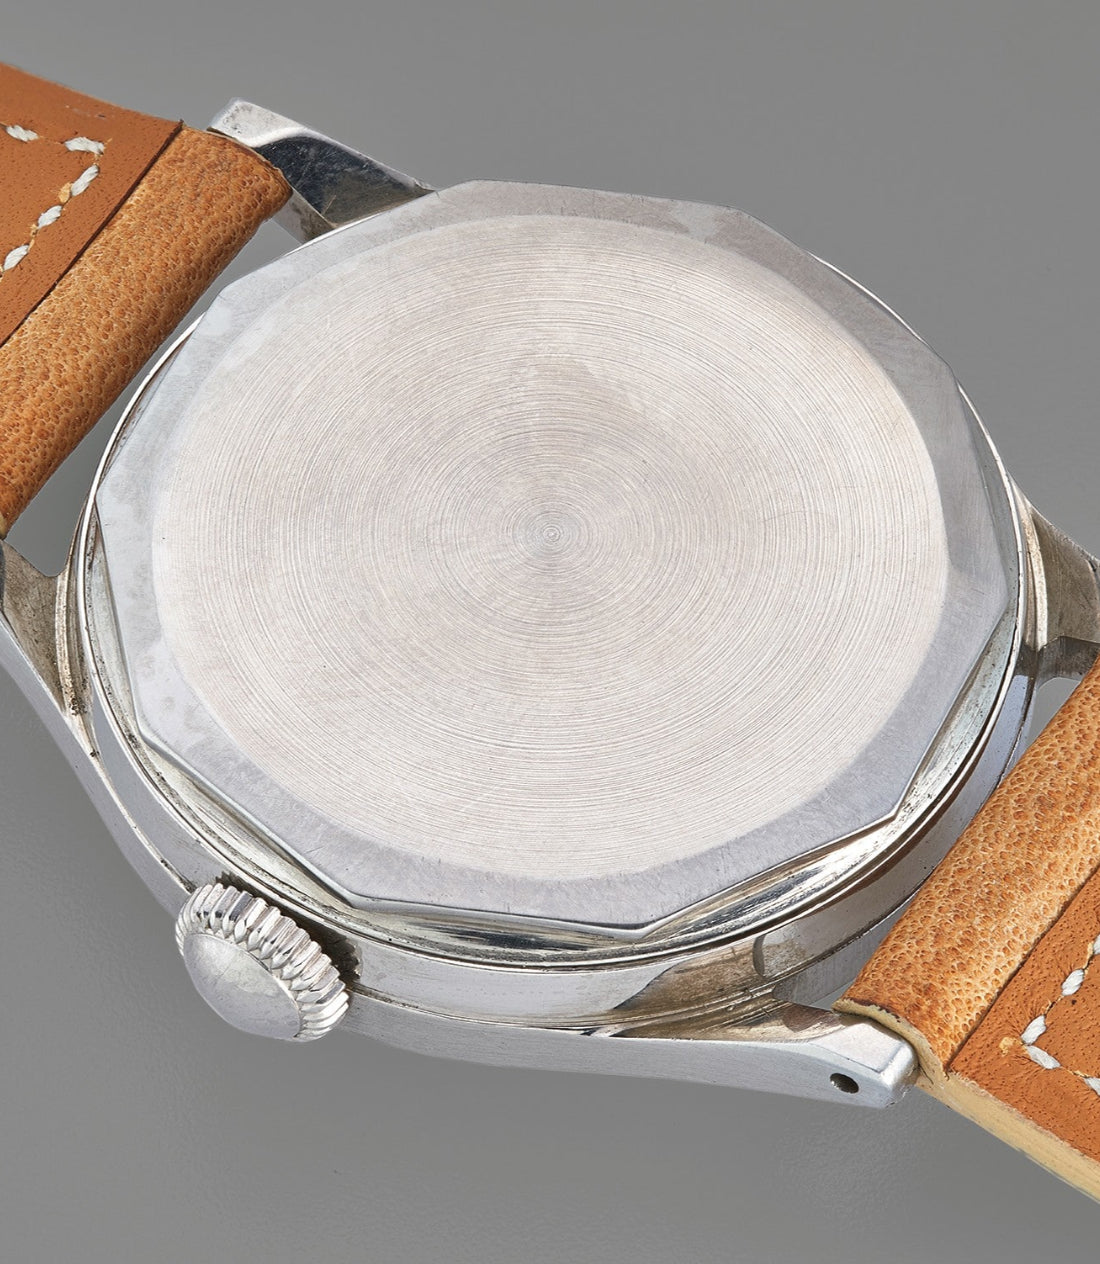 Patek Philippe Calatrava ref. 565 with Borgel waterproof case for A Collected Man London